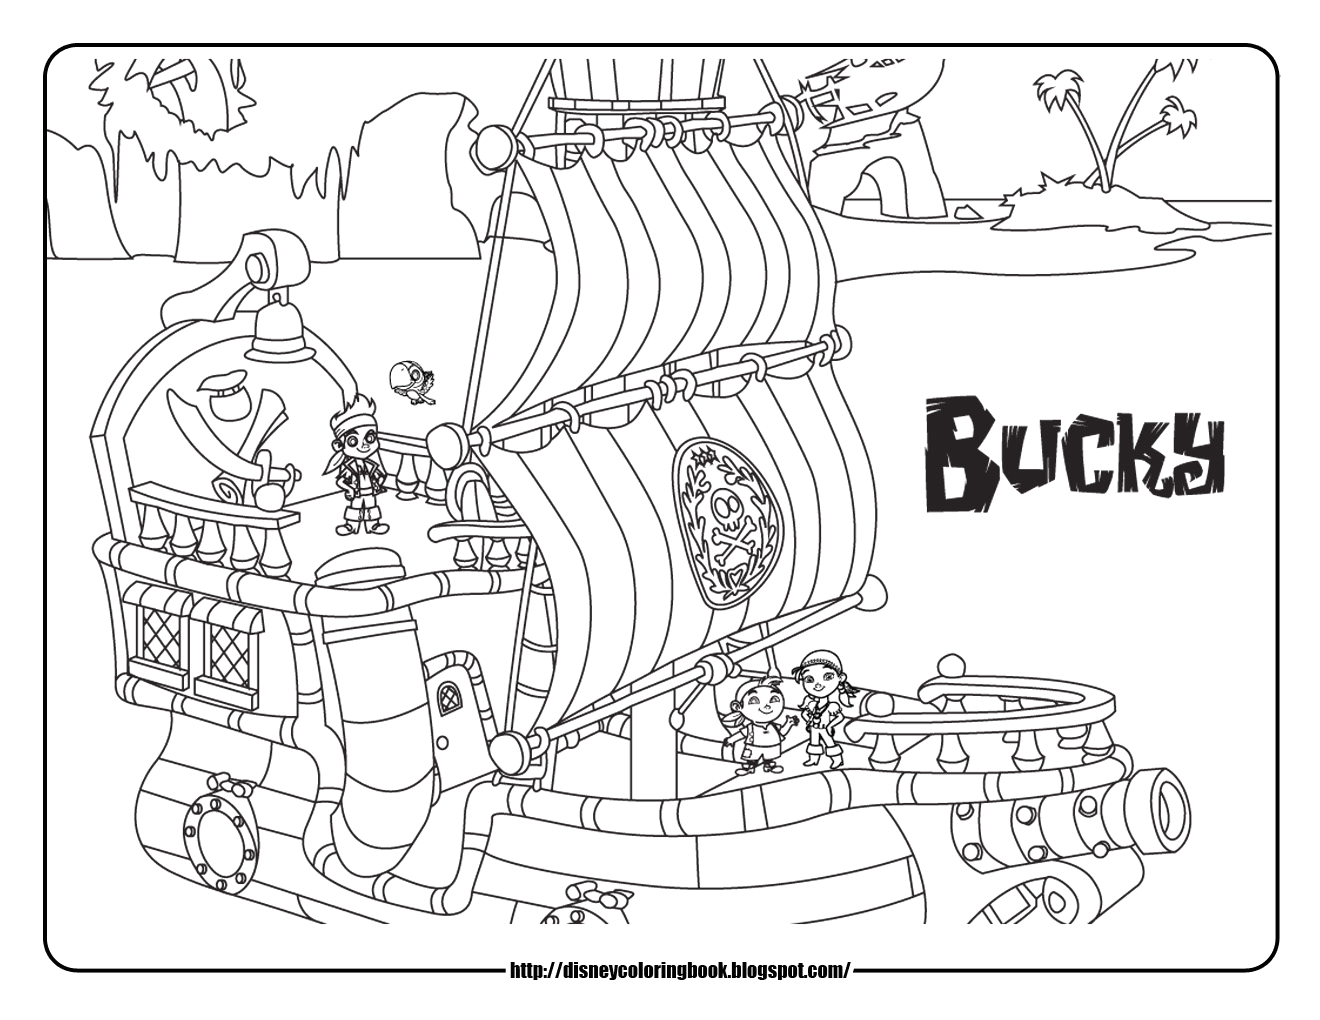 Jake and the Neverland Pirates Coloring Pages Disney Coloring Pages and Sheets for Kids Jake and the